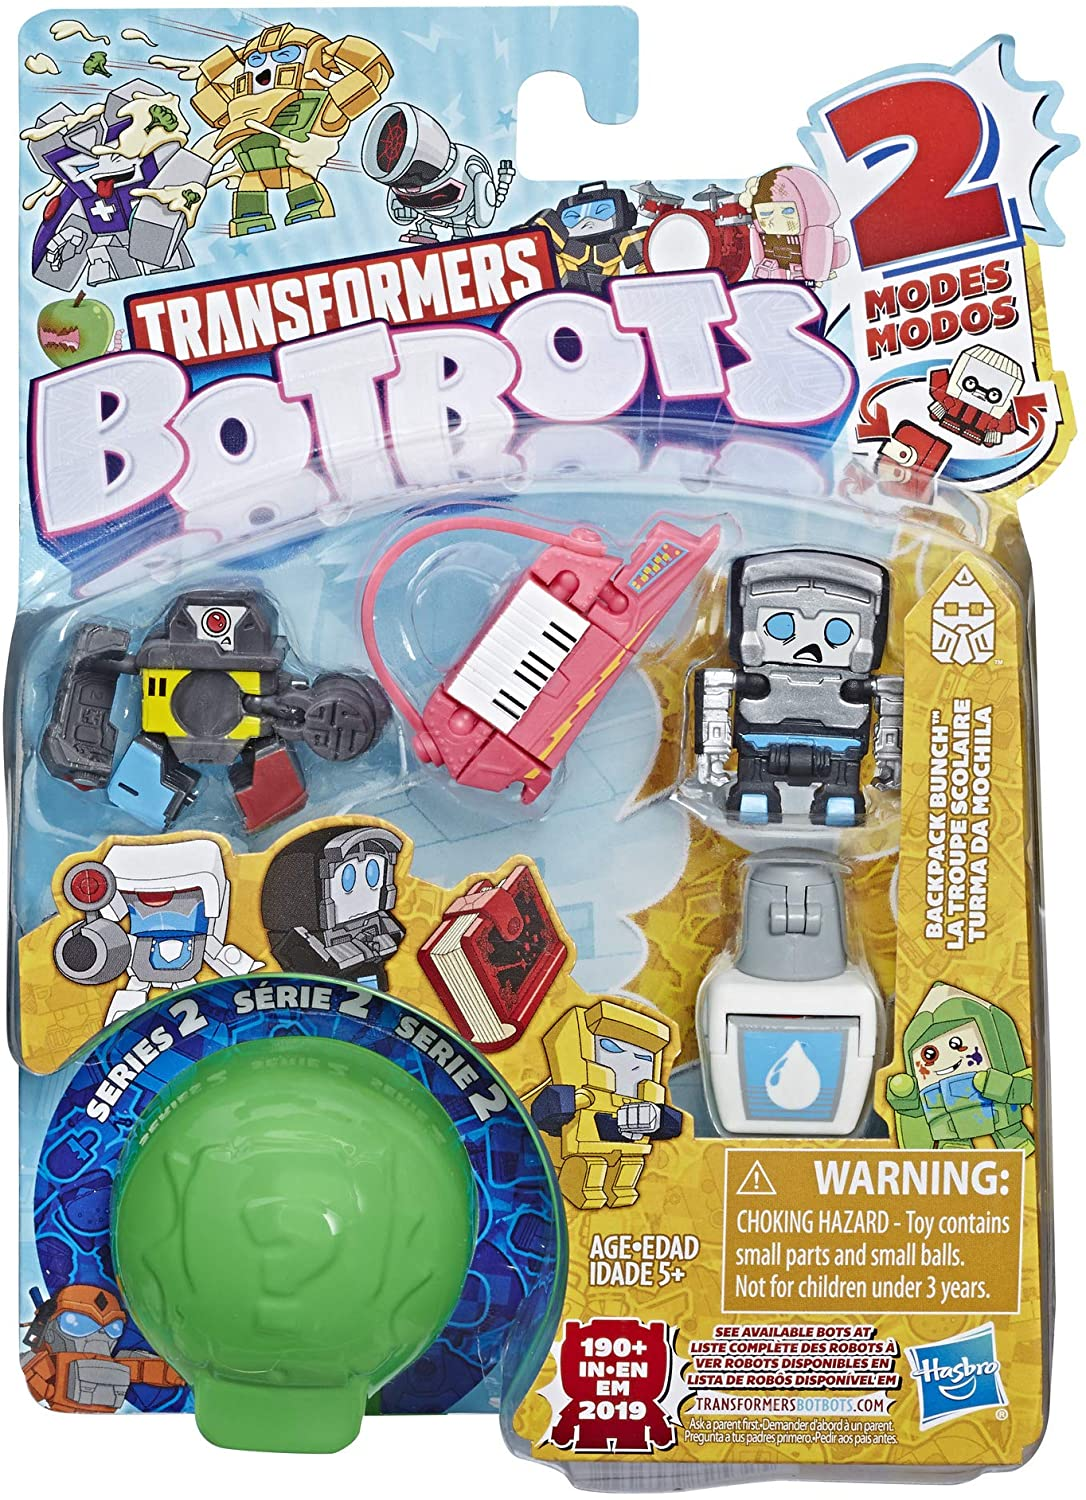 GAME OVER Transformers BotBots Series 1 LOST BOTS 2019 Hasbro